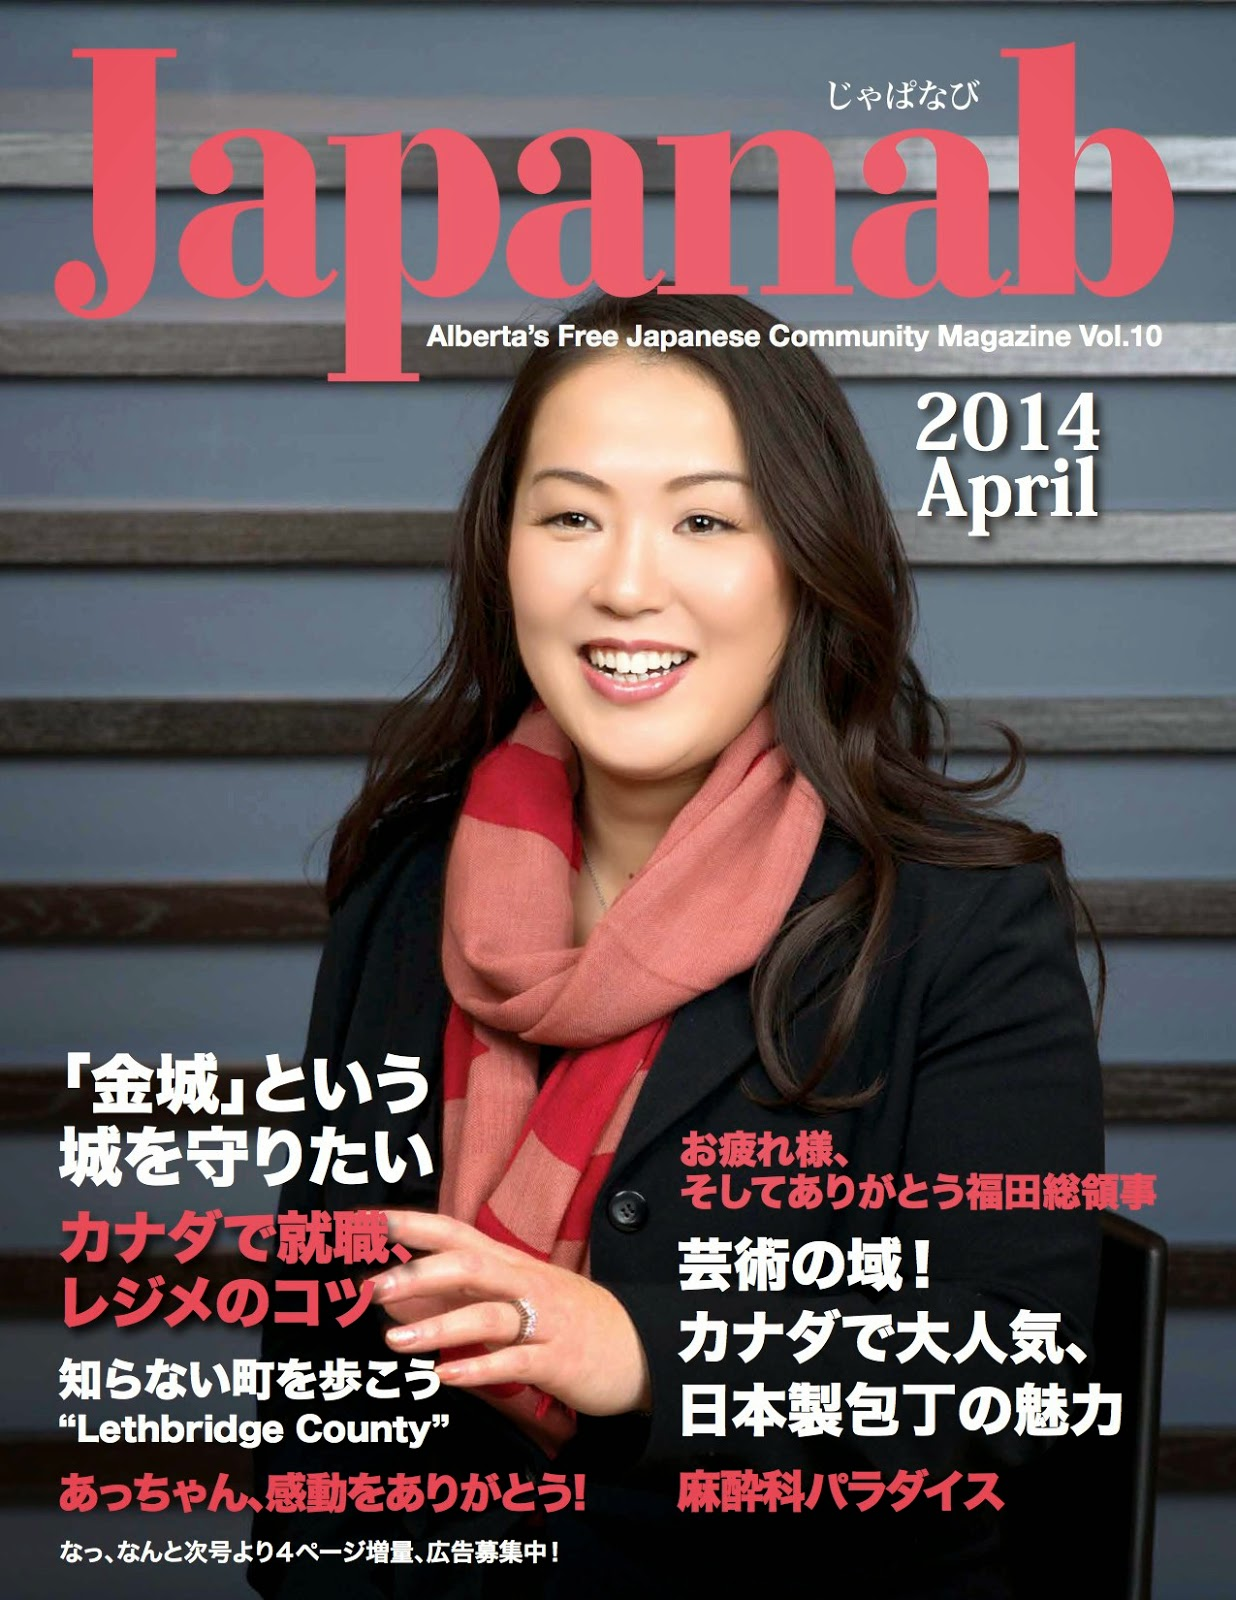 Japanab Vol. 10 - 2014 April